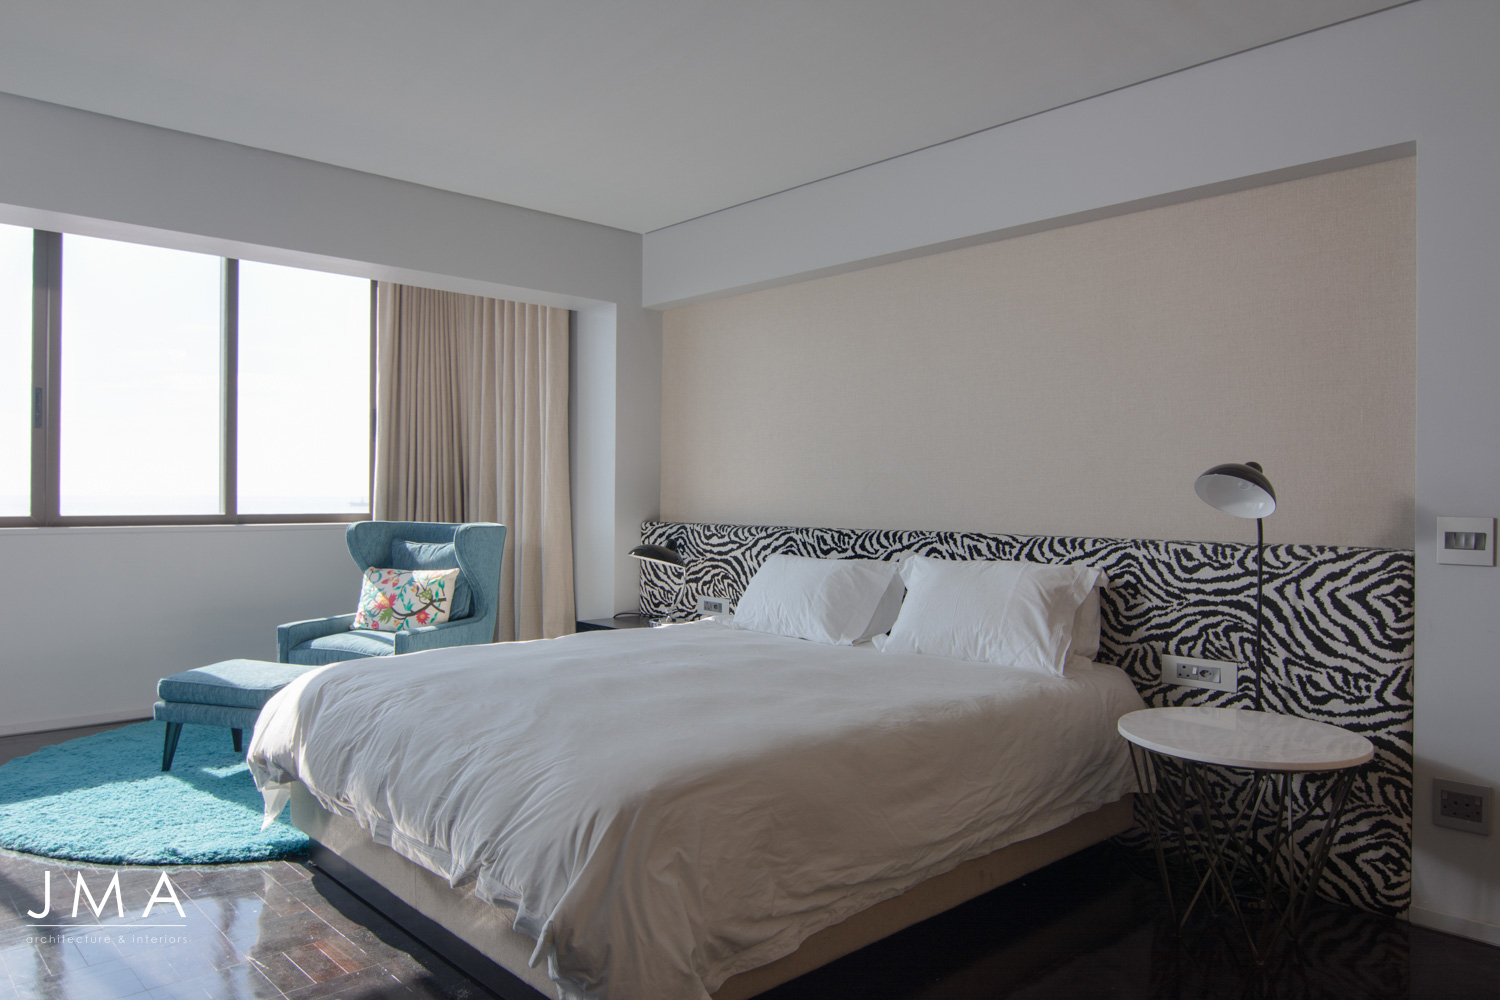 Sea Point Apartment Architecture & Interior Design by Jenny Mills Architects - Master Bedroom View 2